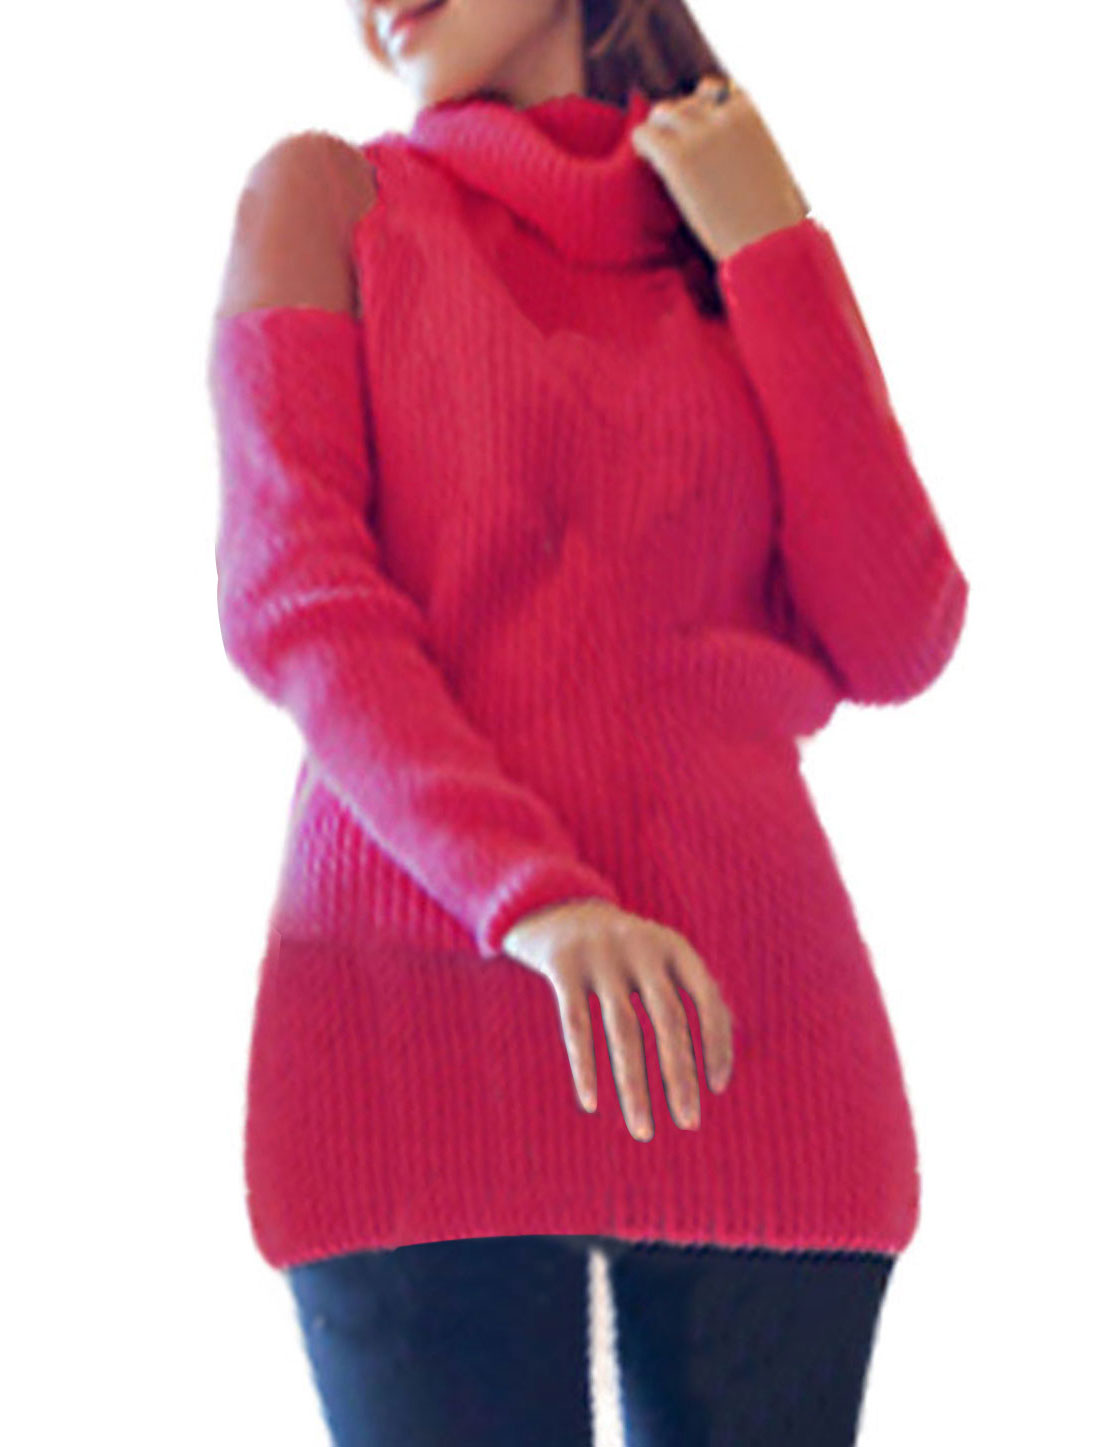 Womens Semi Sheer Lace Shoulder Turtleneck Ribbed Design Stretch Fuchsia Top S